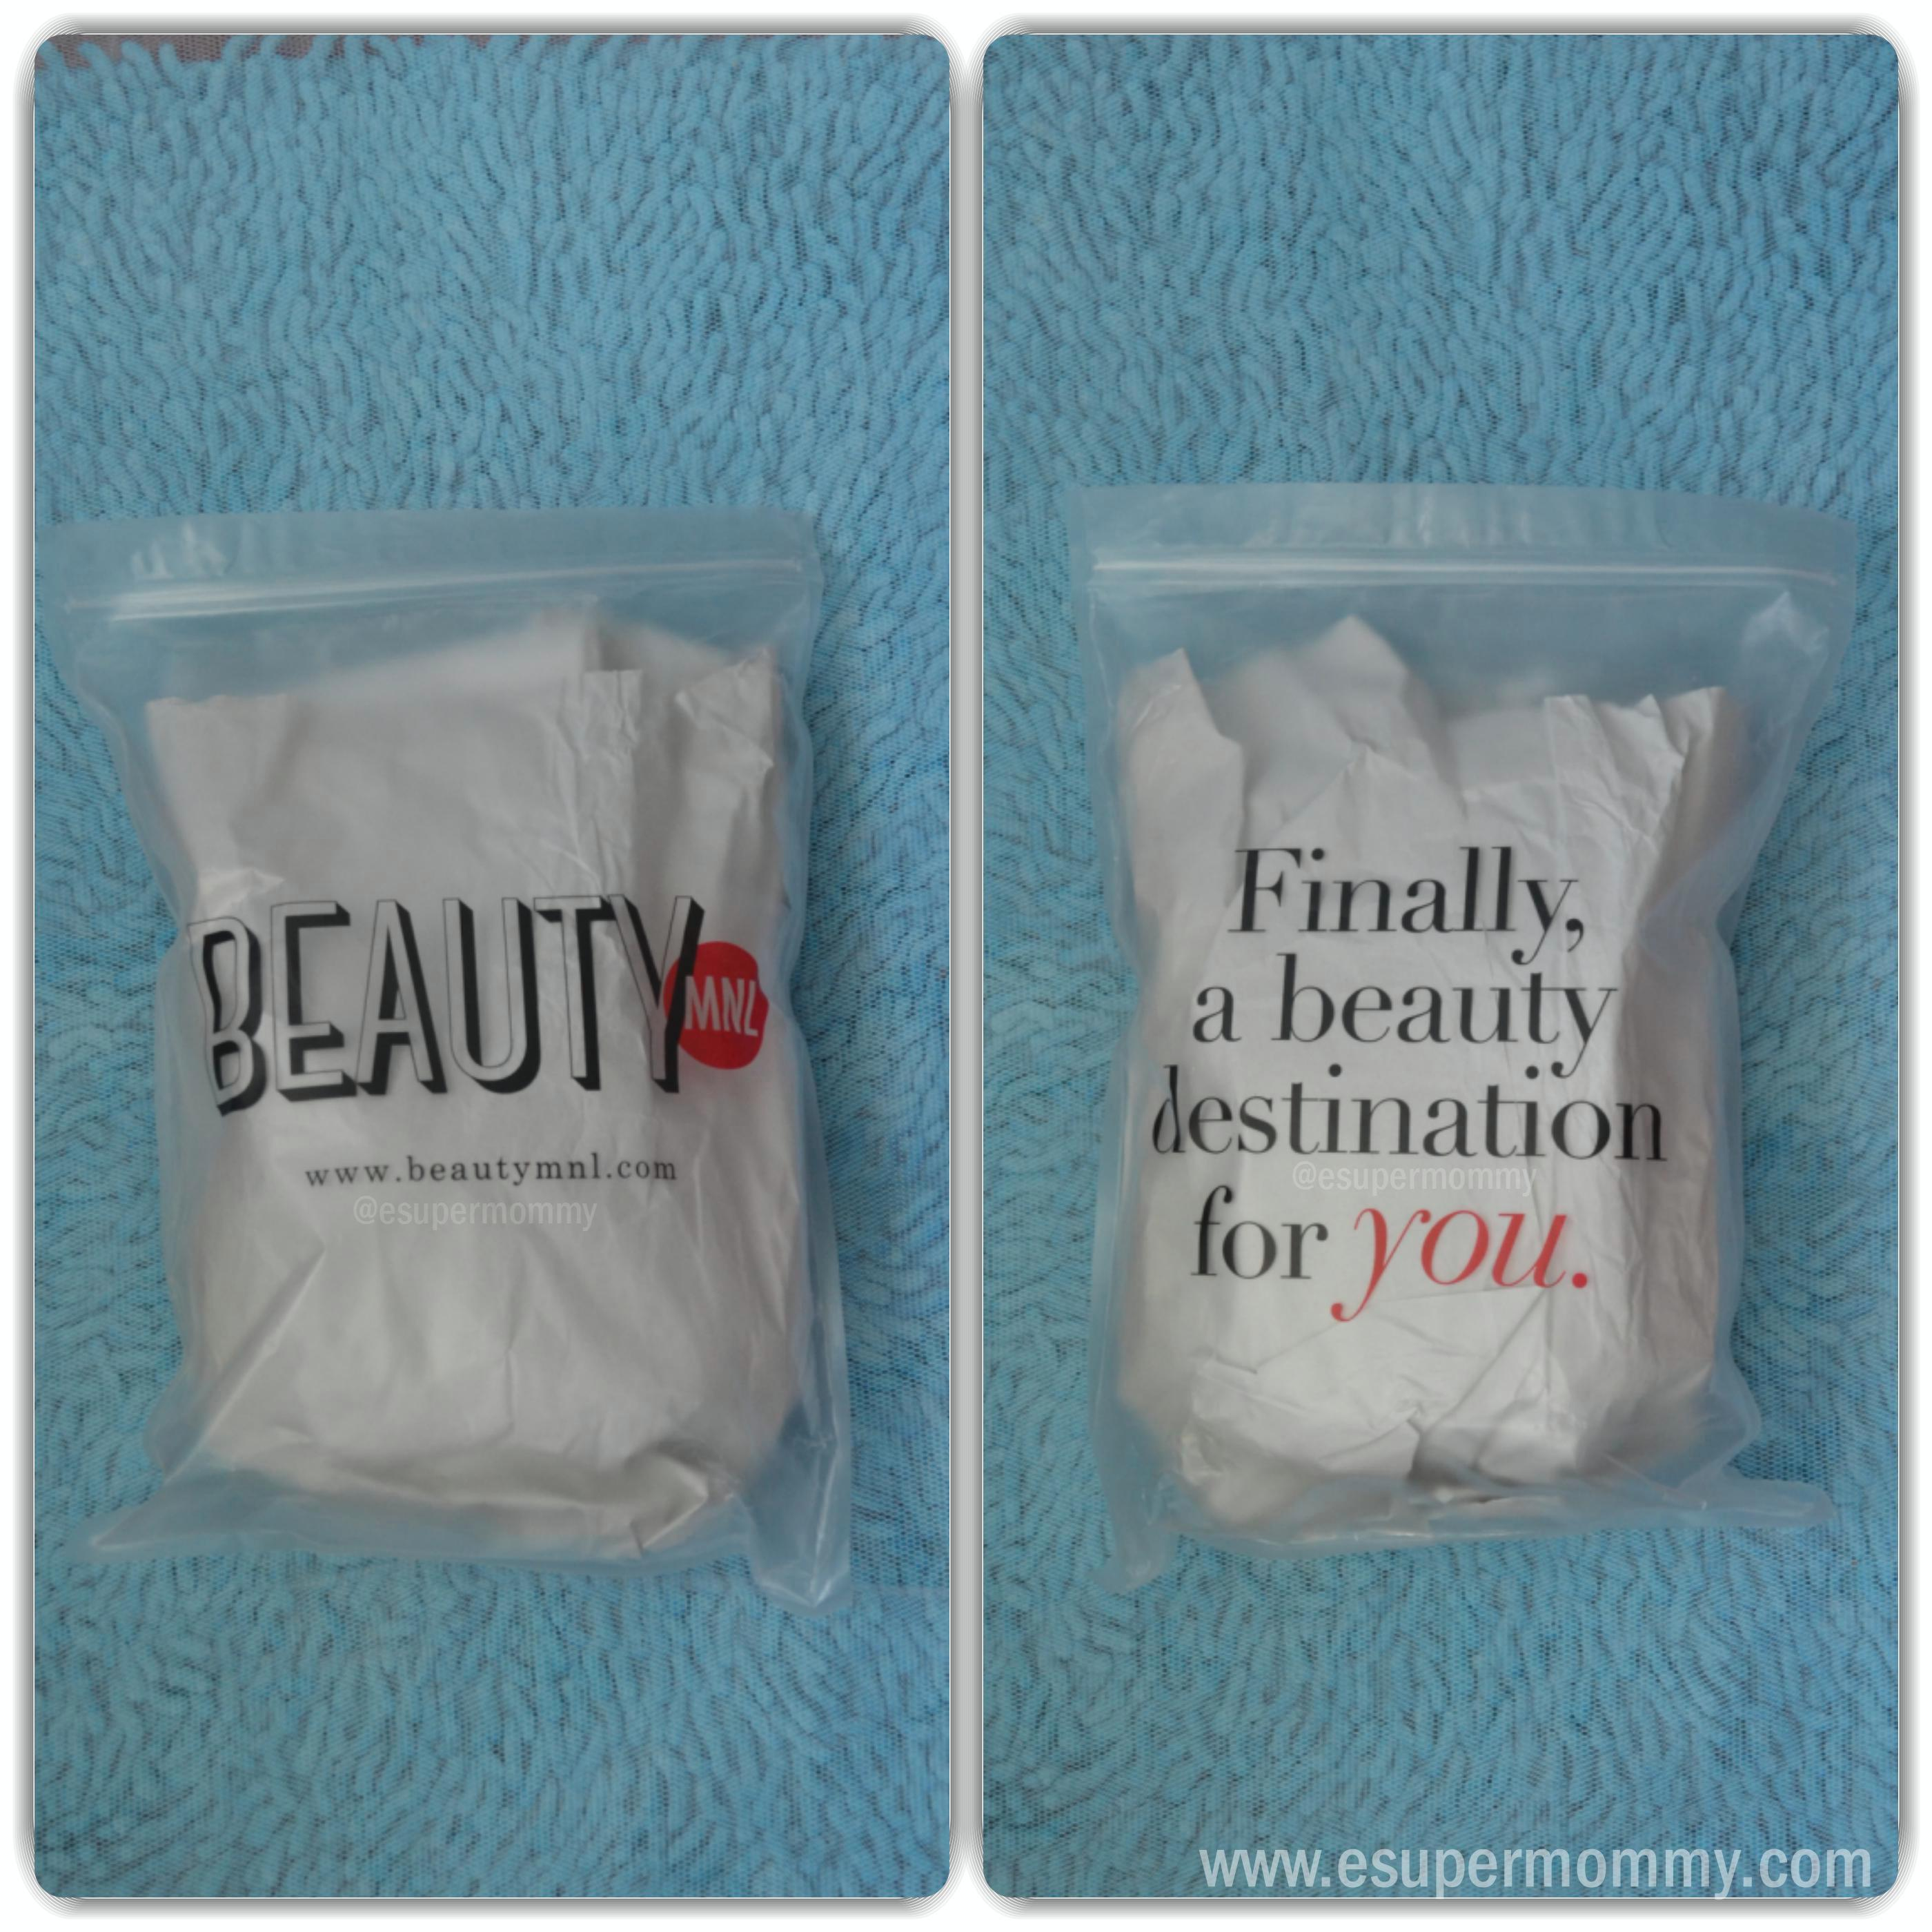 BeautyMnl Packaging